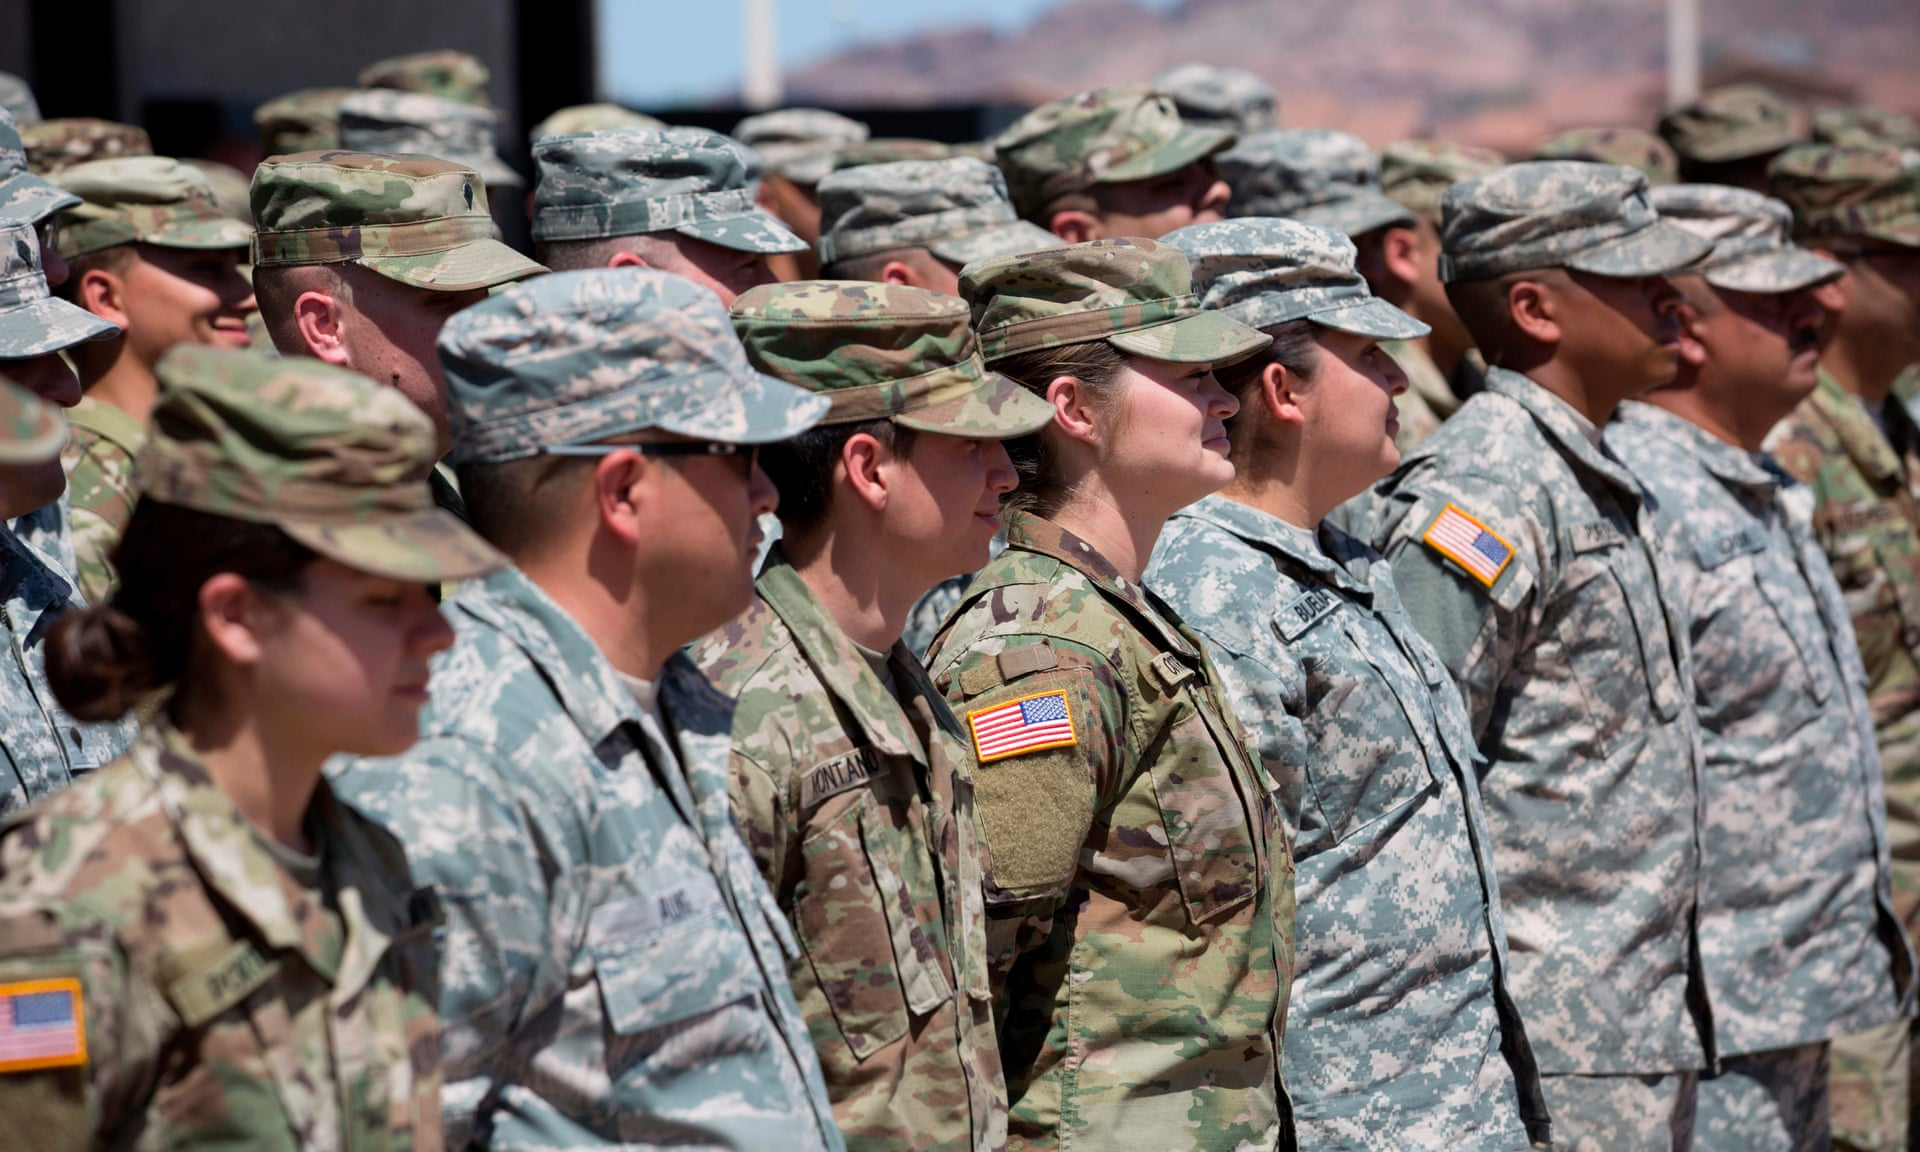 Your Commander-in-Chief Is Lying to You: Veterans Issue Open Letter to Active Duty US Soldiers